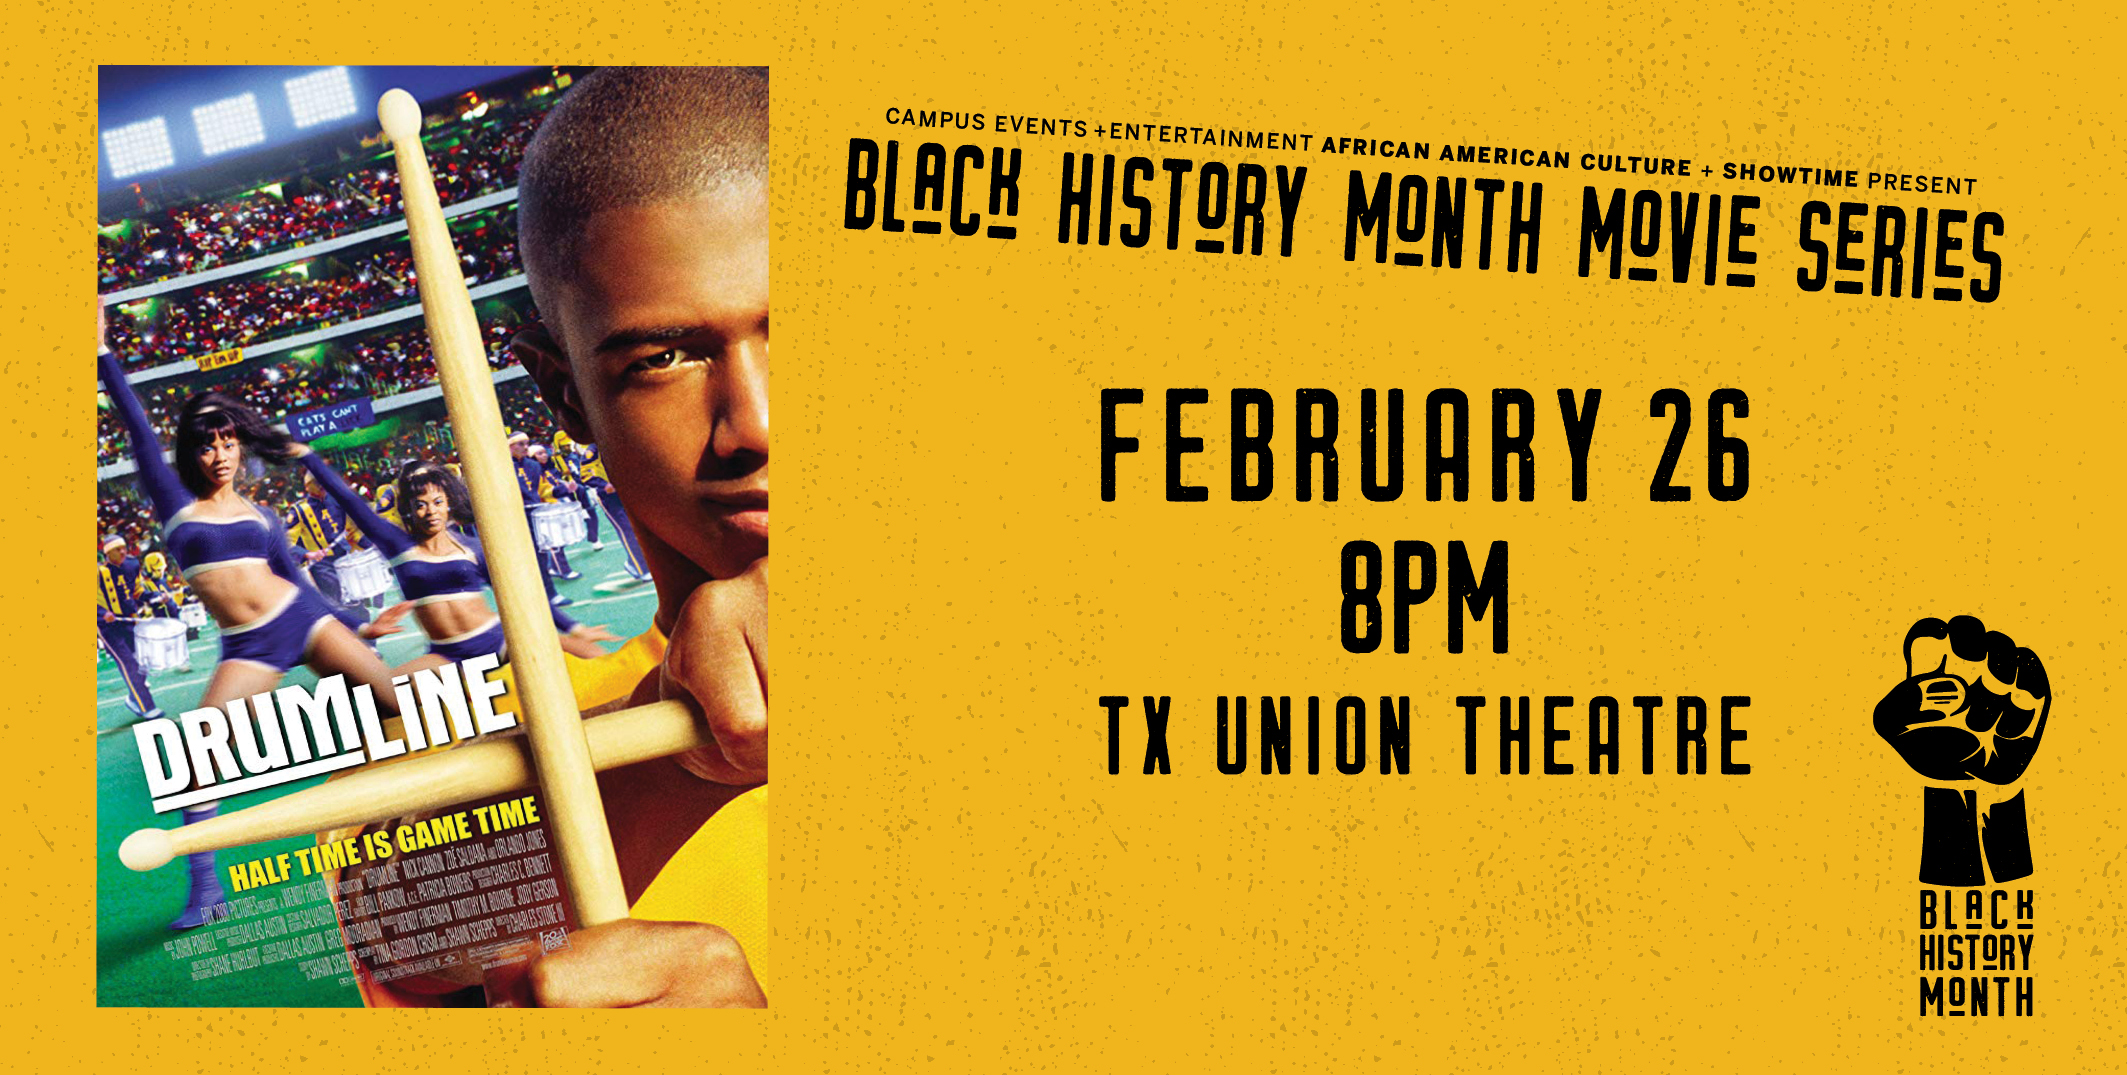 Black History Movie Series: Drumline February 26 8 pm Union Theater